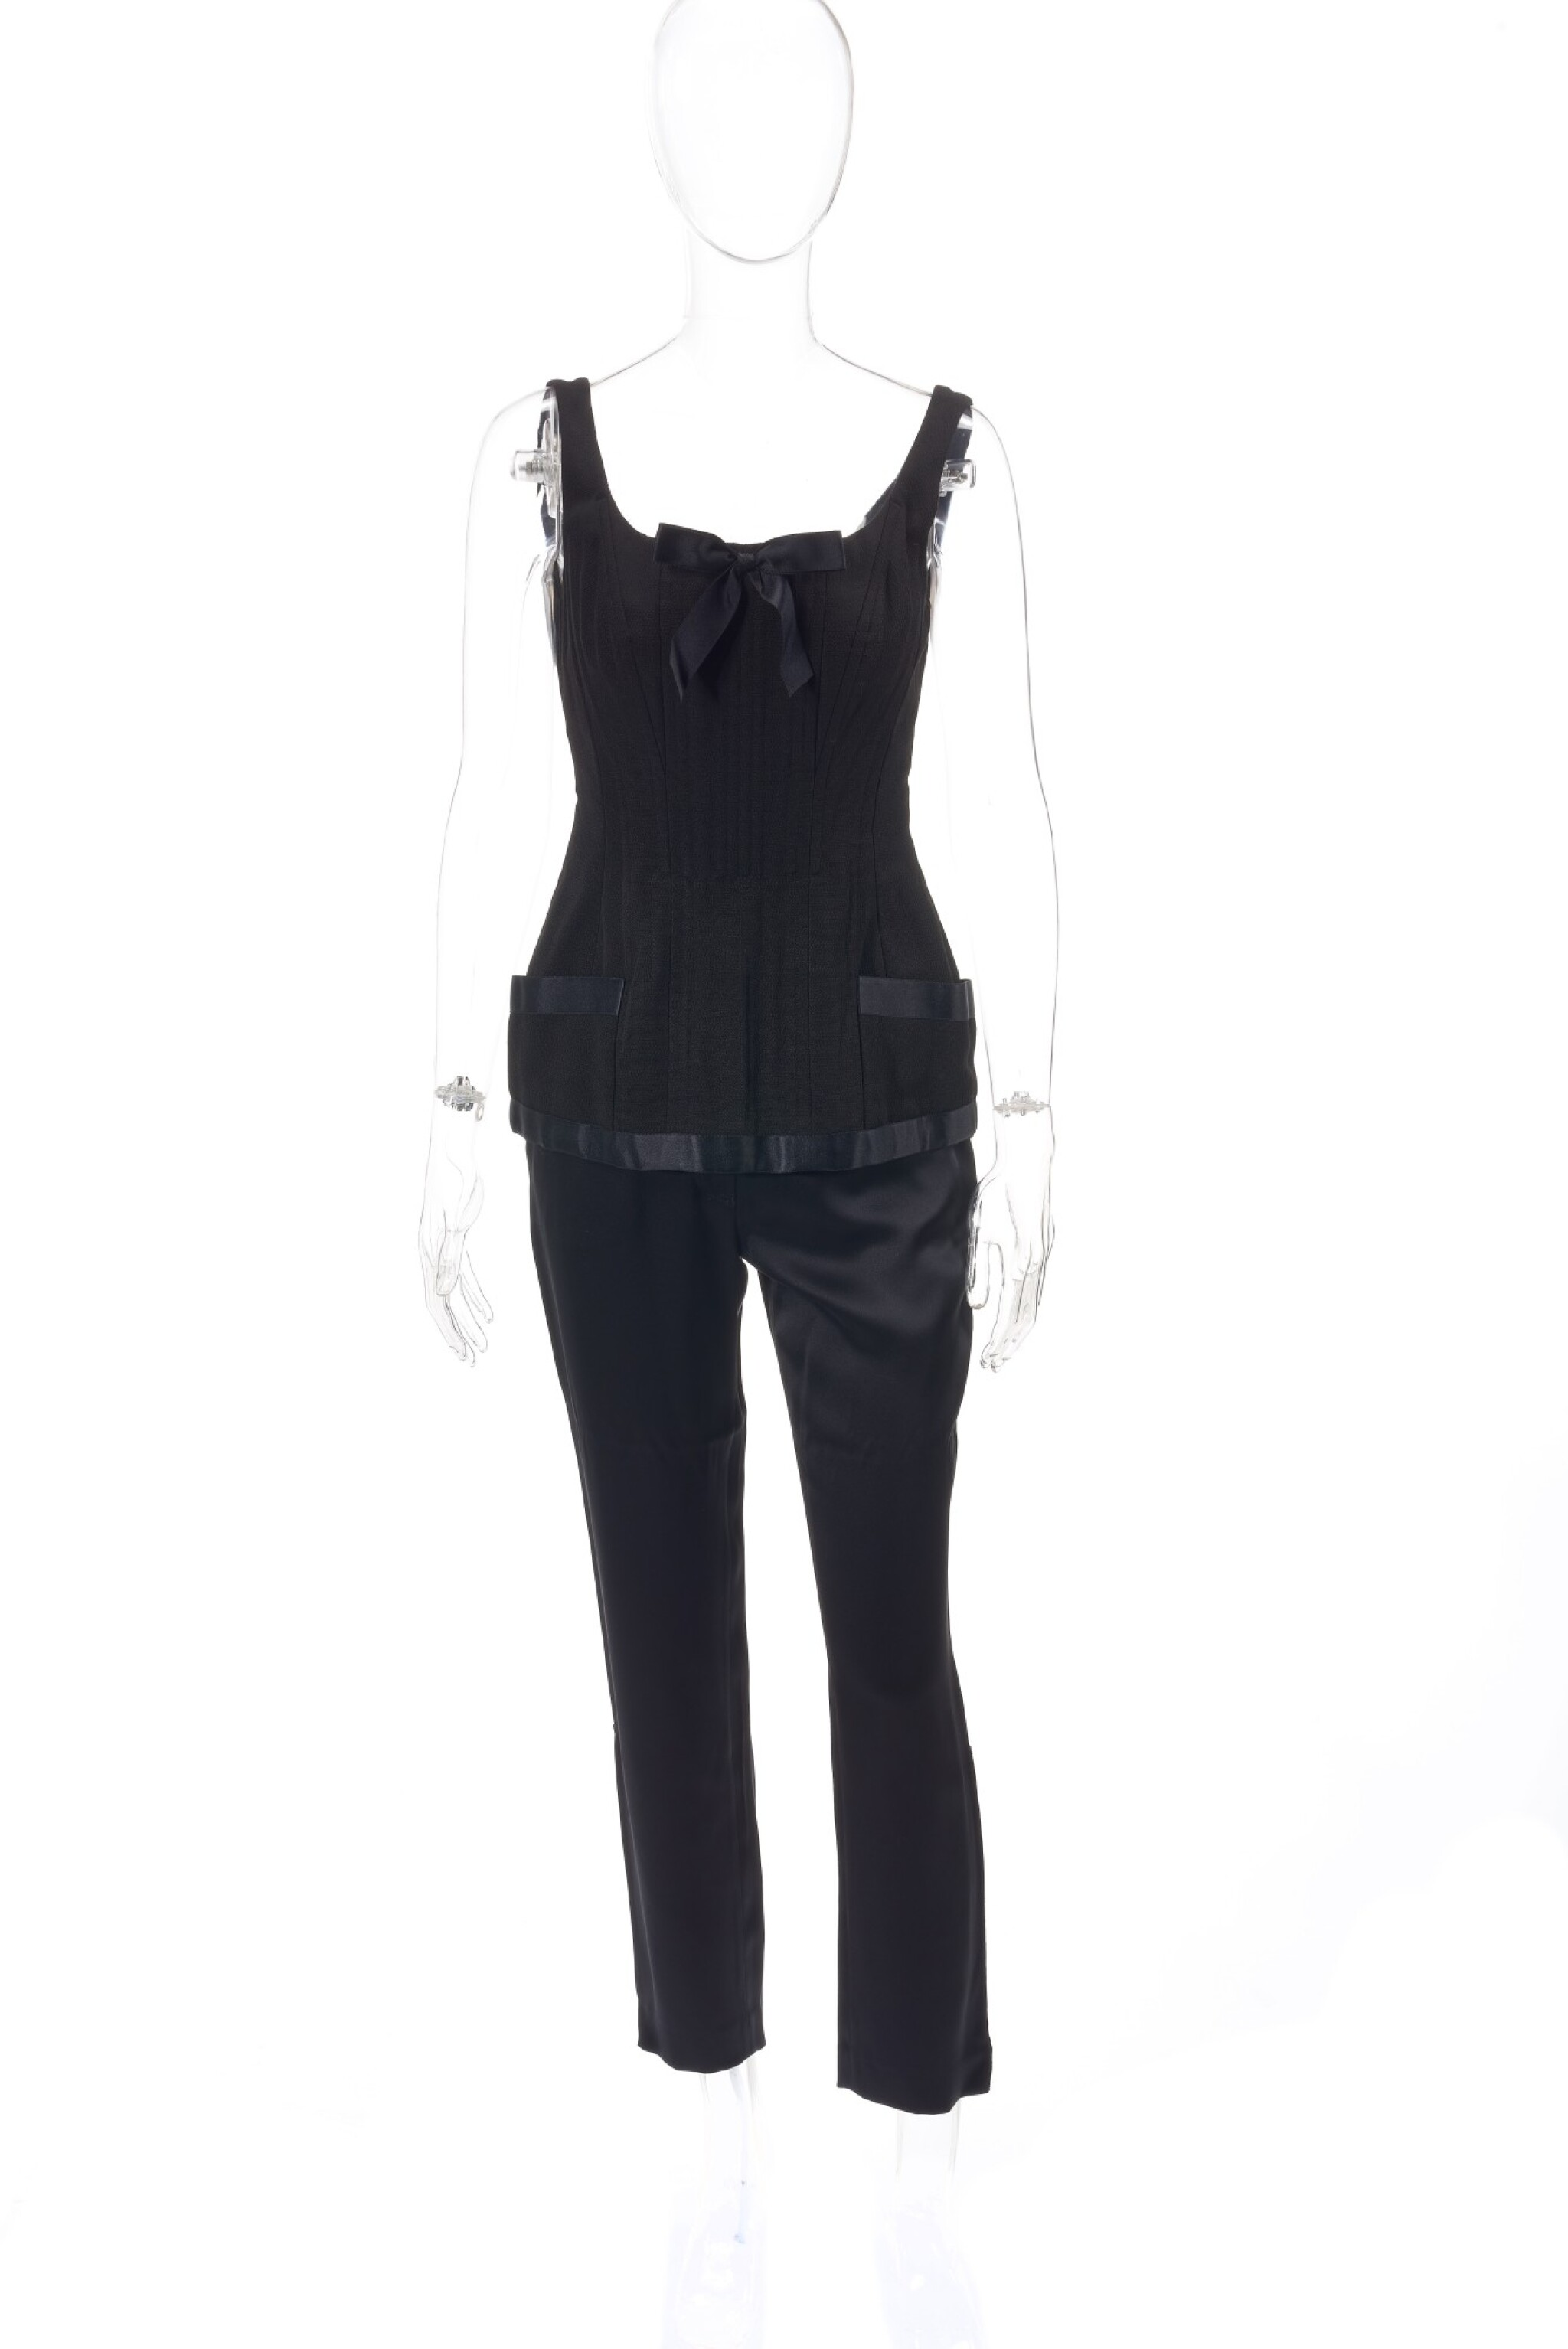 Pair of black silk trousers and black corset top